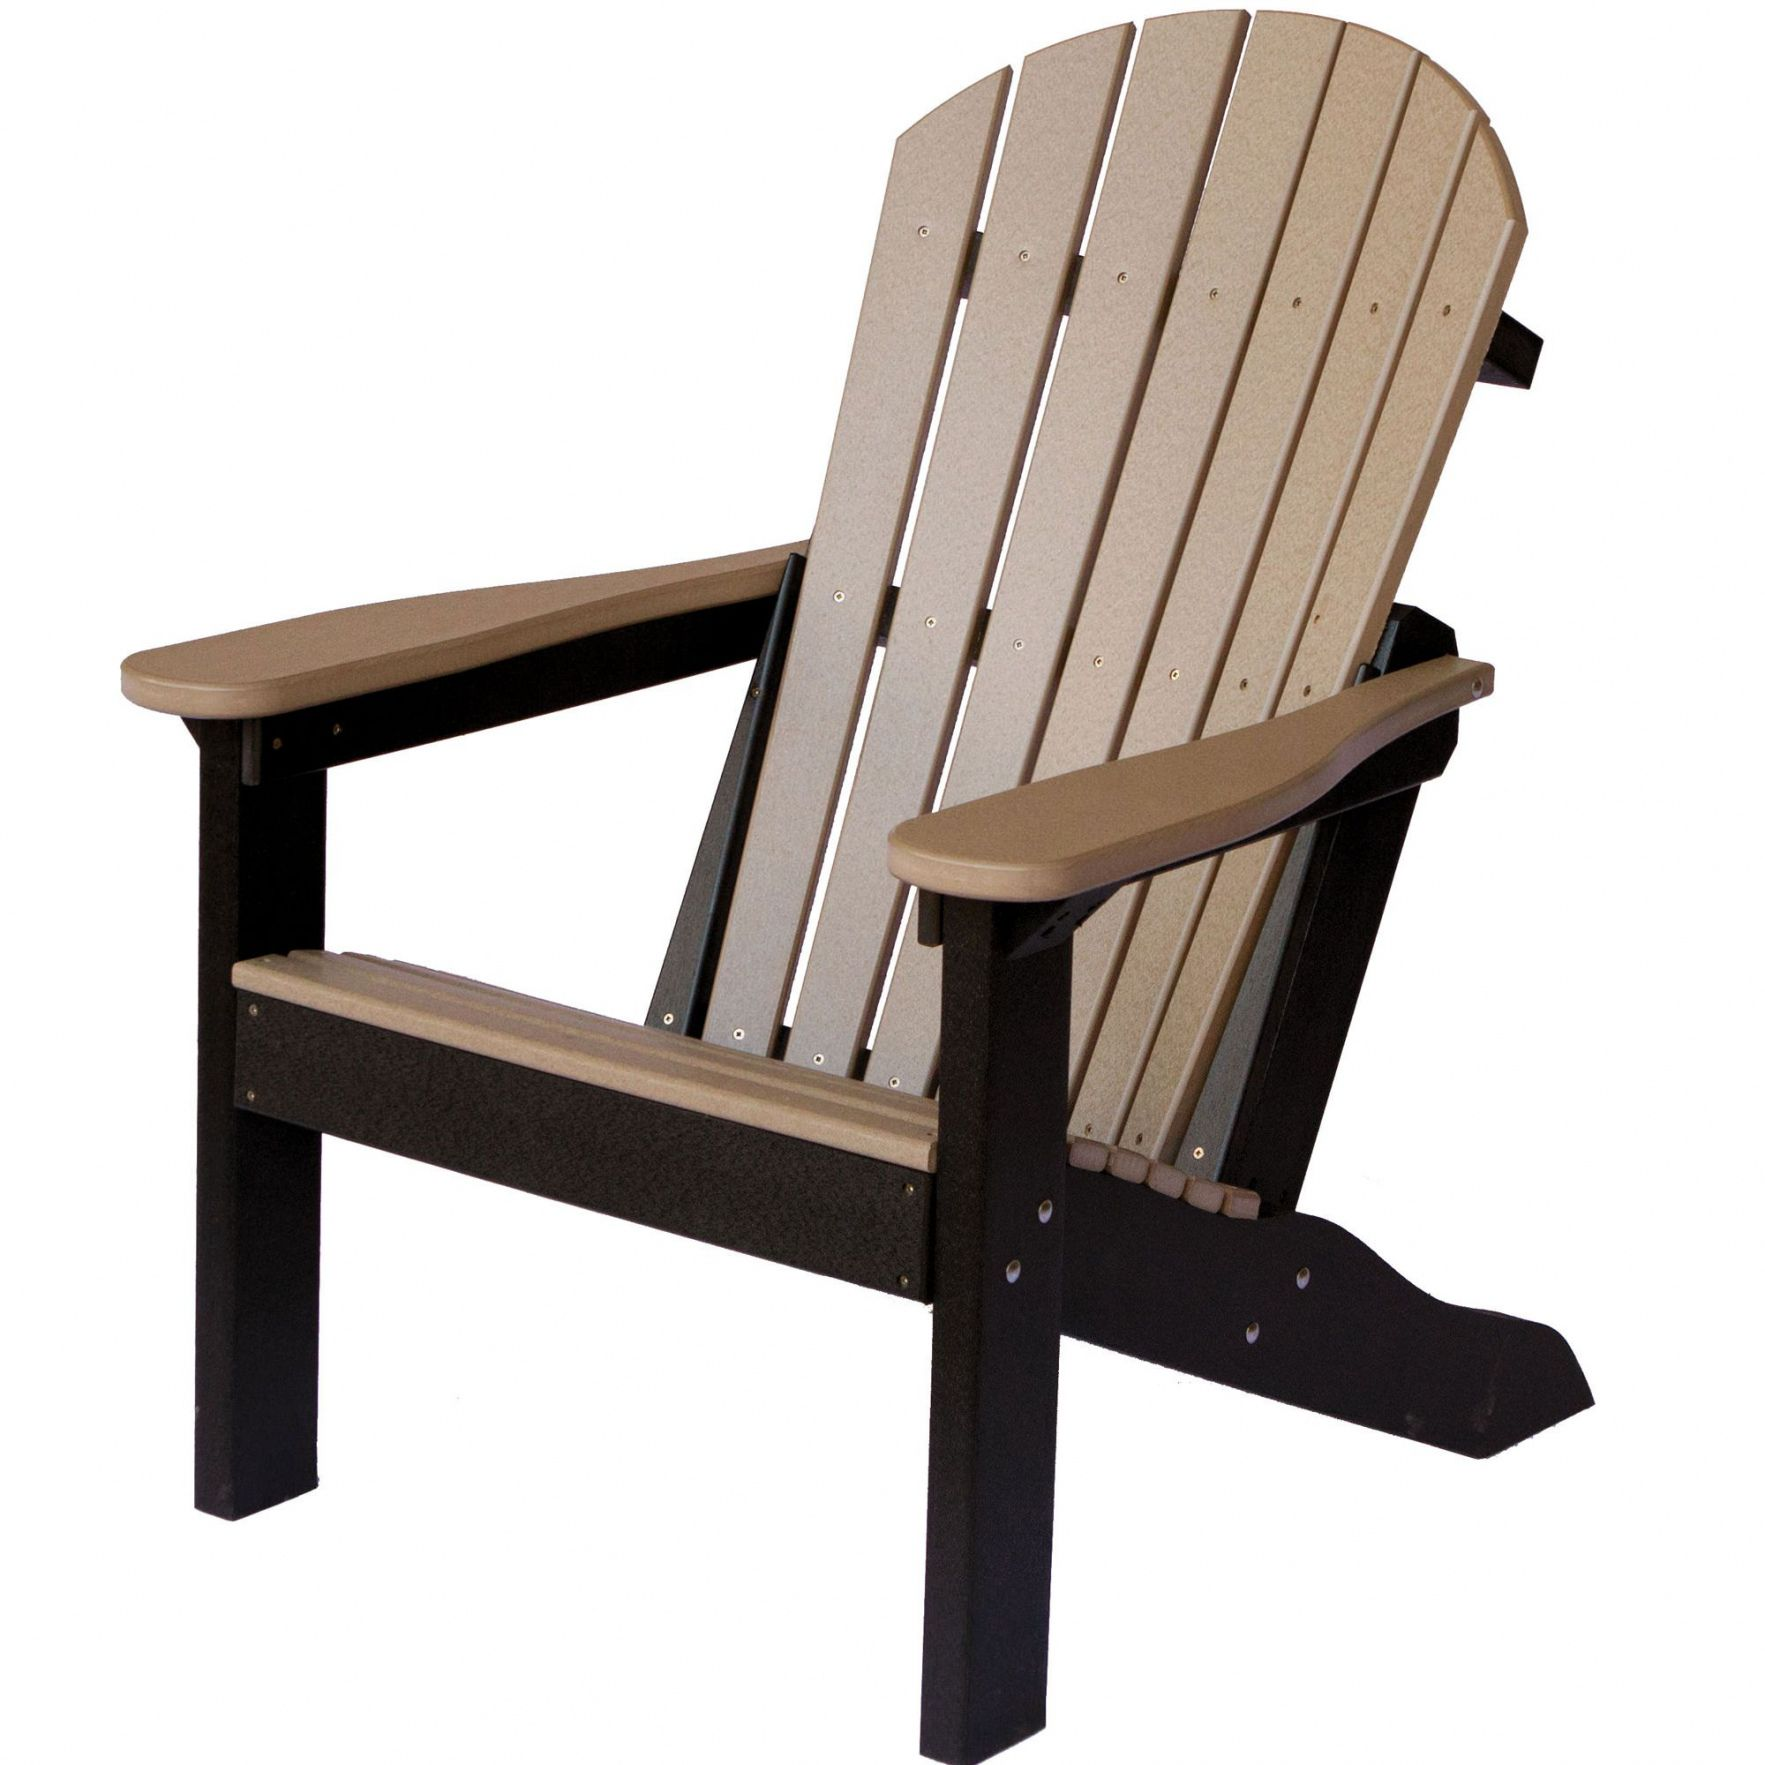 55 Brown Resin Adirondack Chairs Best Paint to Paint Furniture